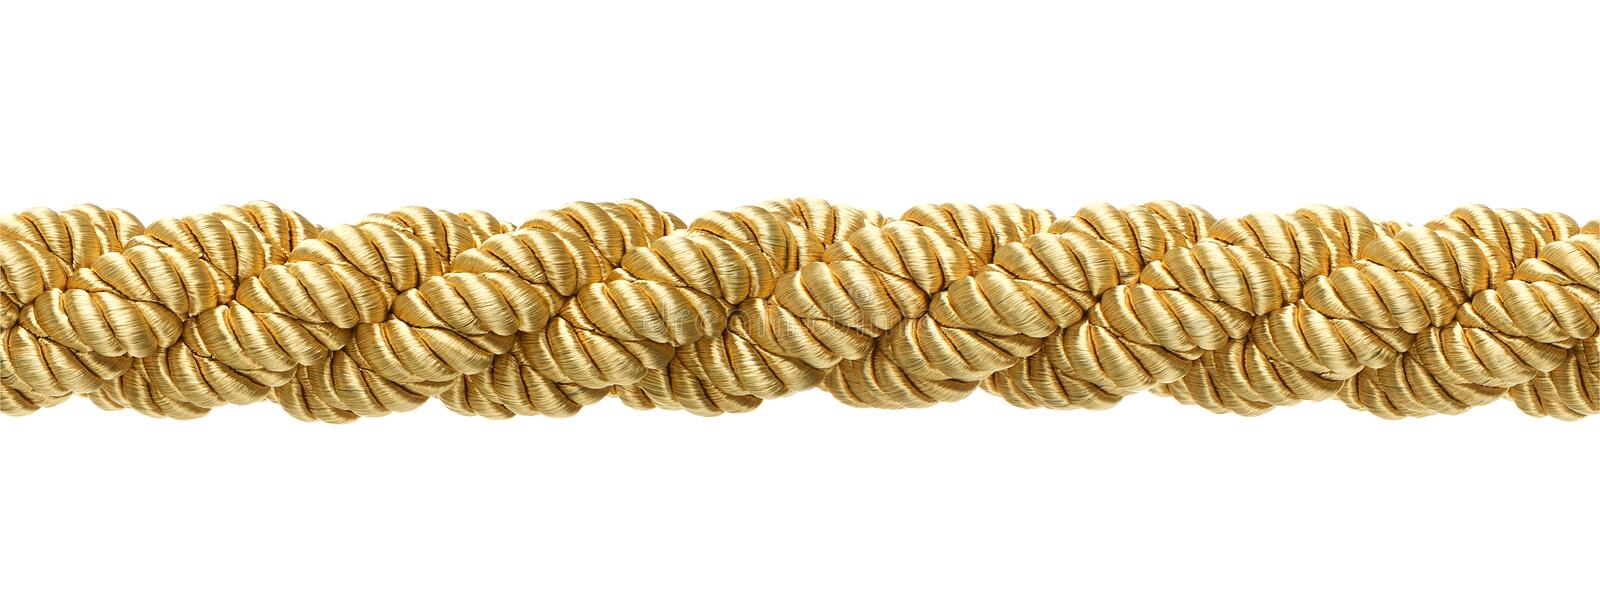 Corde sans couture d'or photo stock